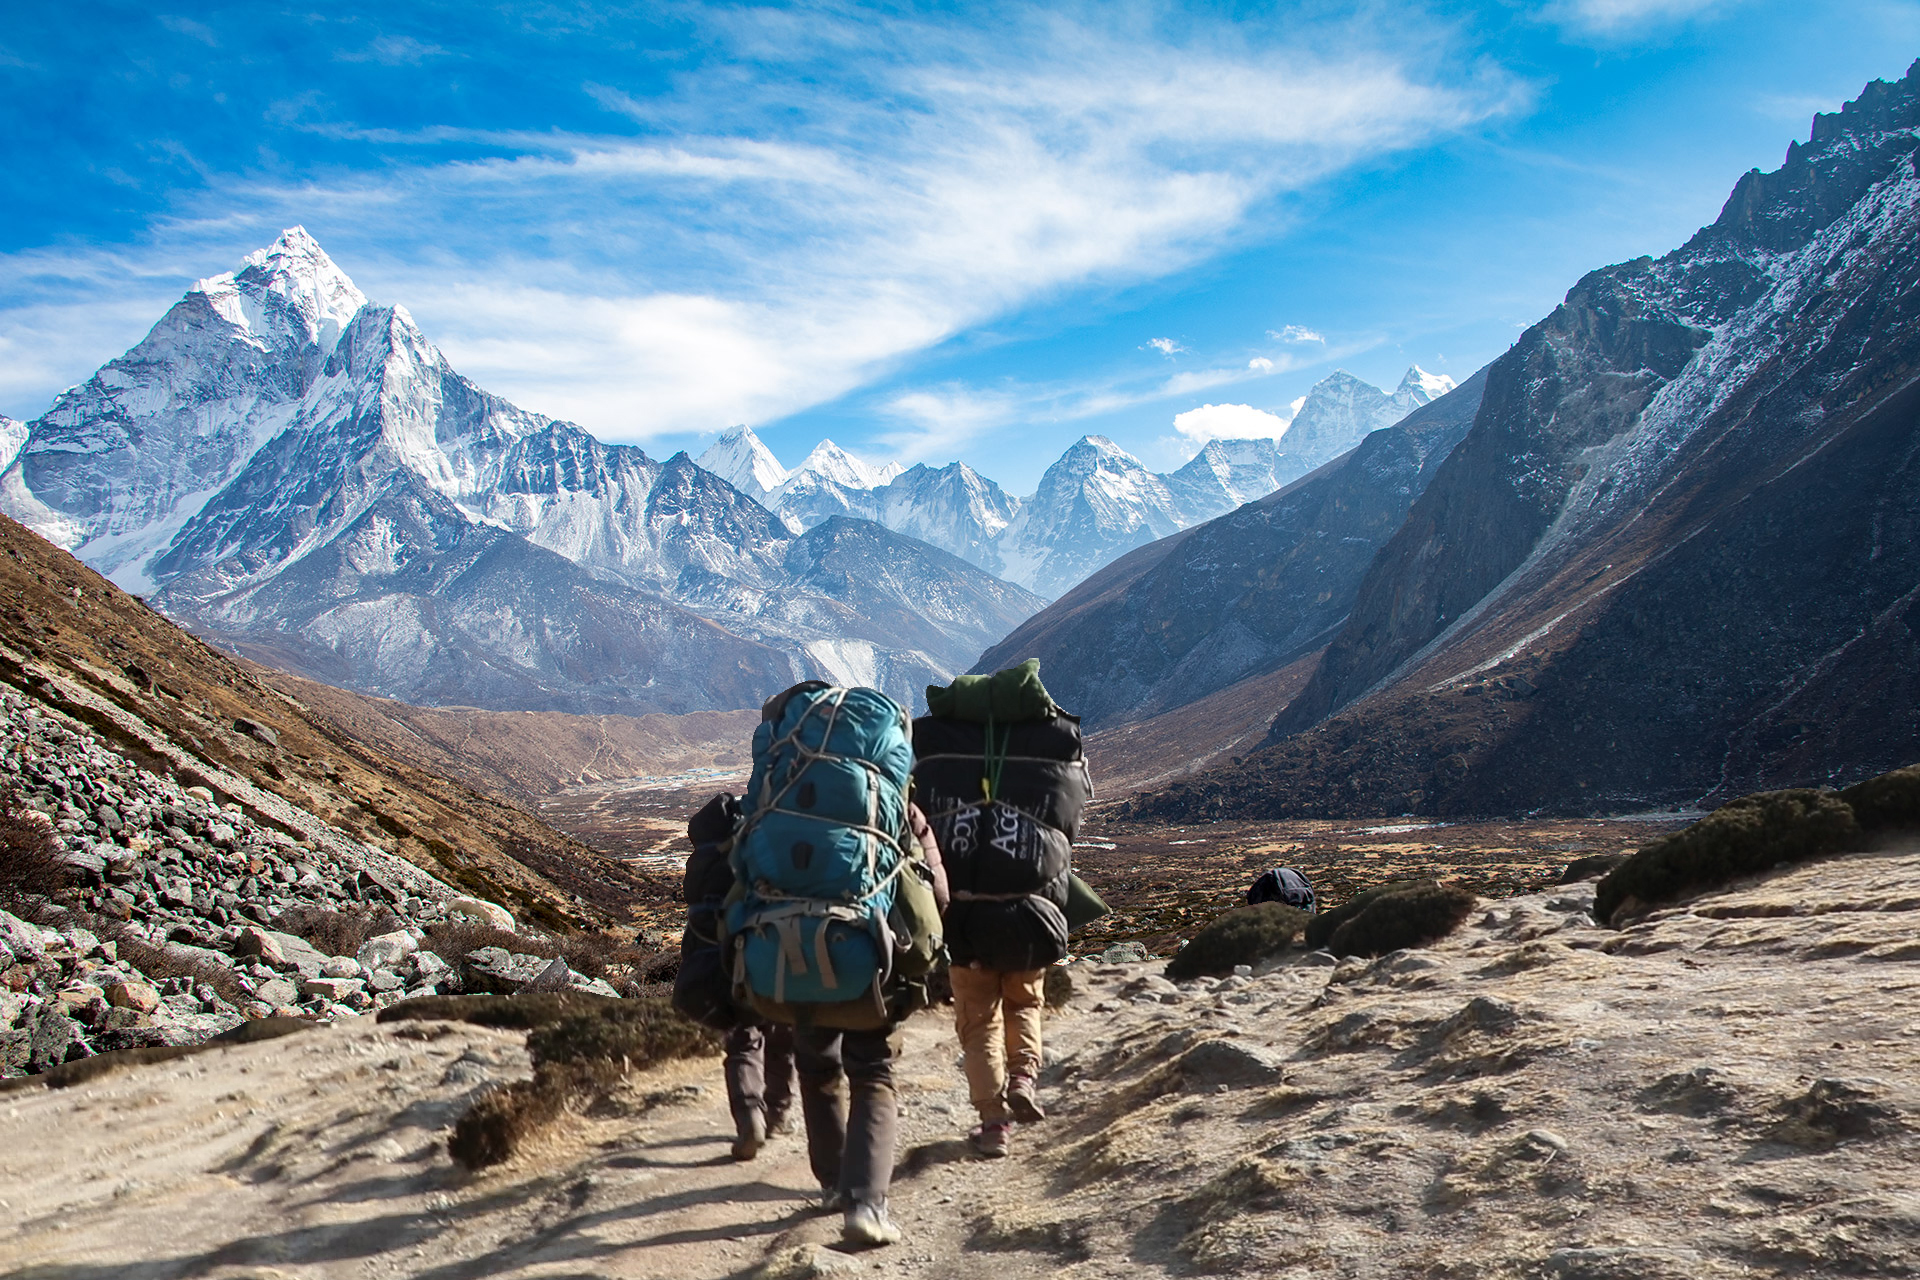 Everest Base Camp Trek | Stunning scenery Ice peaks